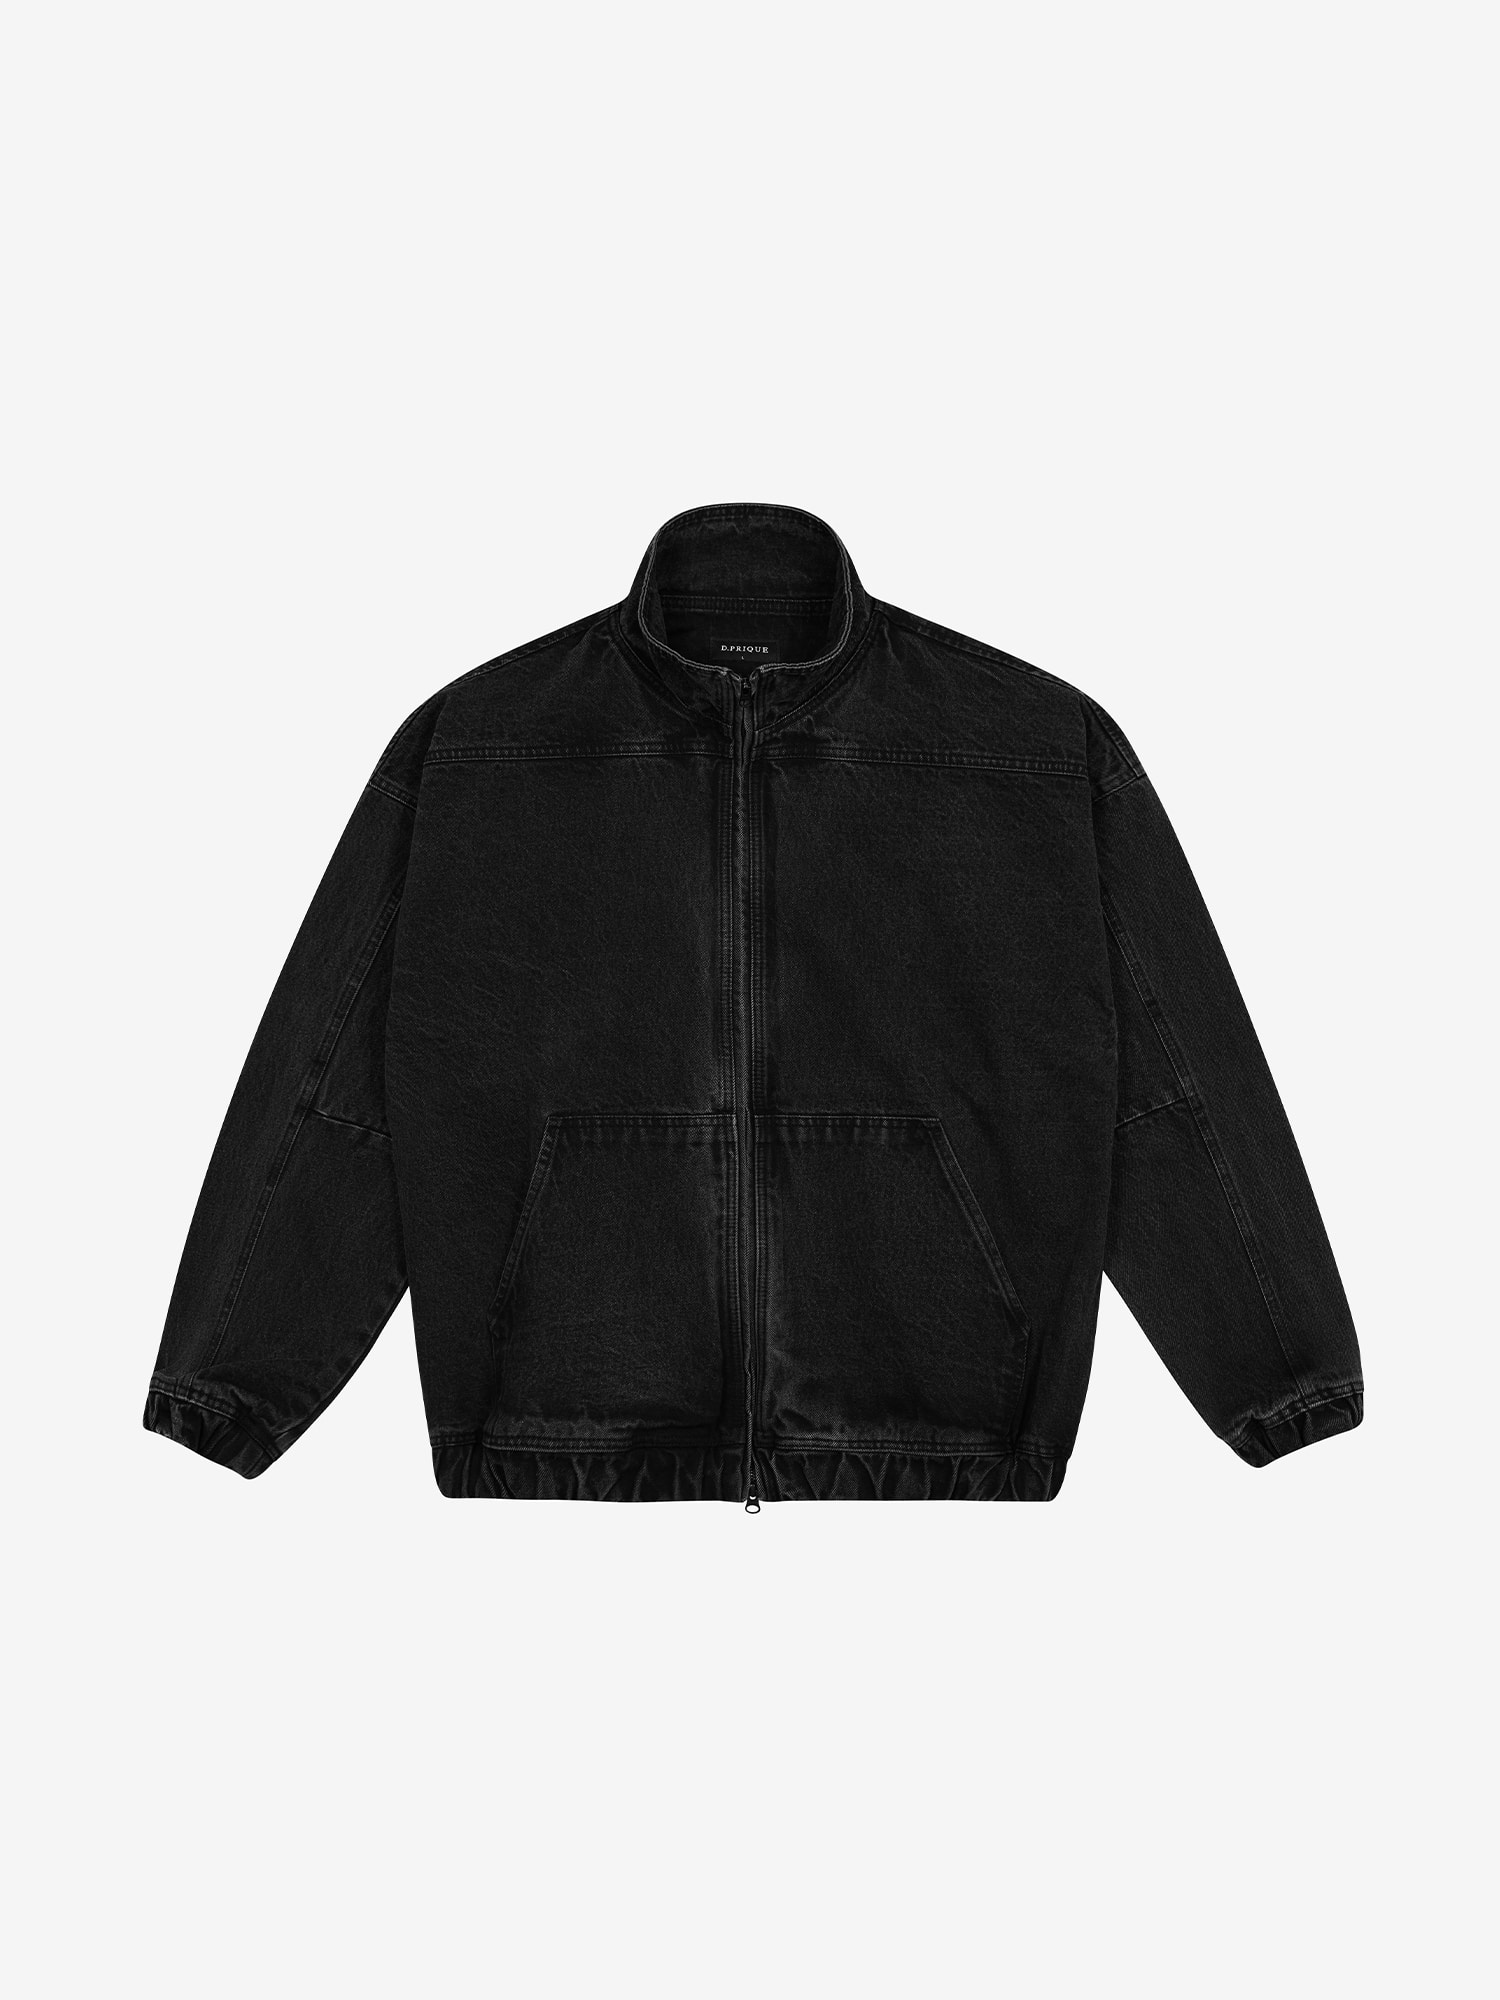 PANEL ZIP-UP JACKET - Black